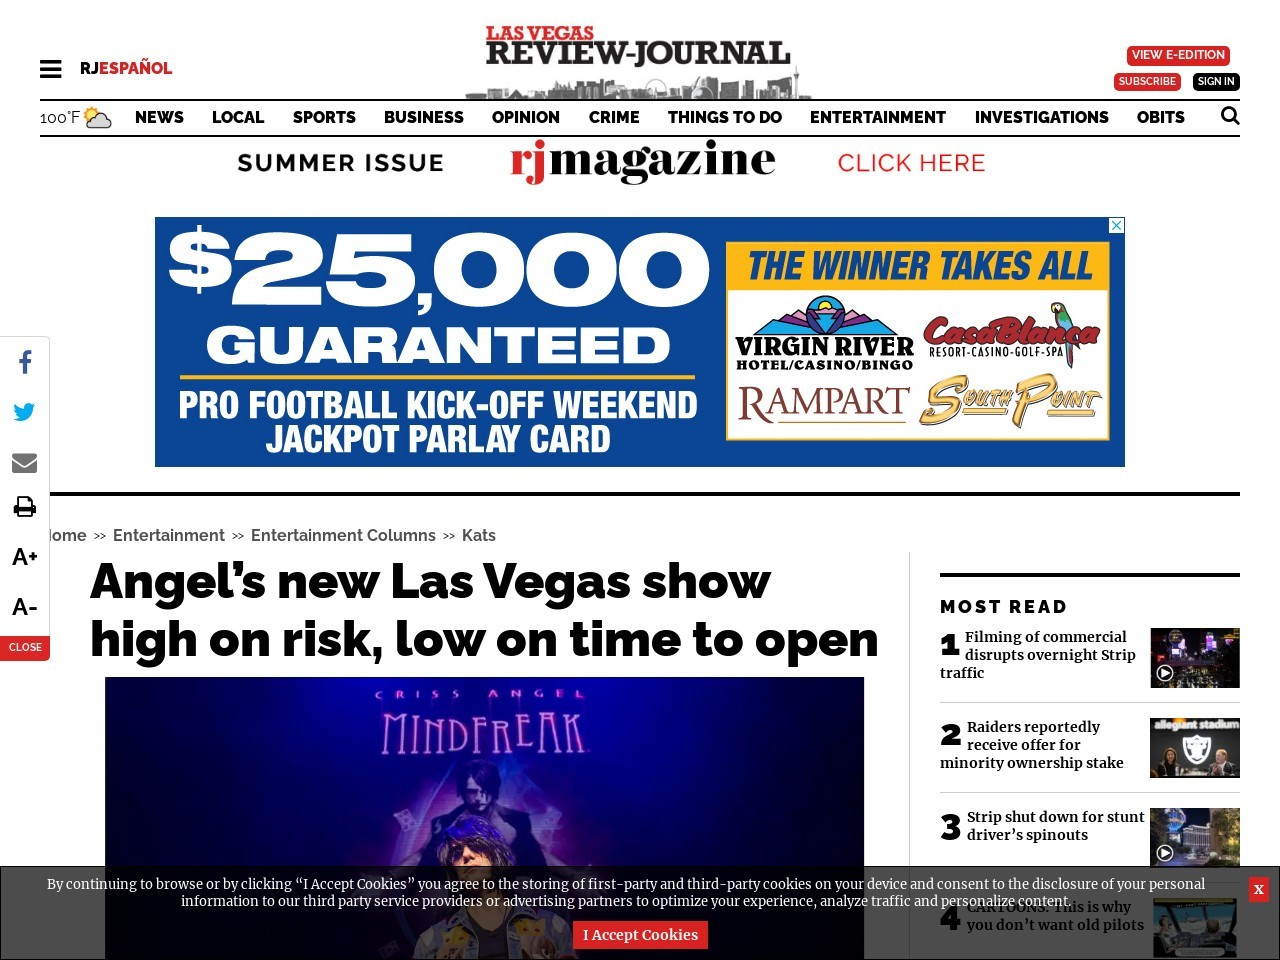 Criss Angel's new Las Vegas show is high on risk, low on time to open